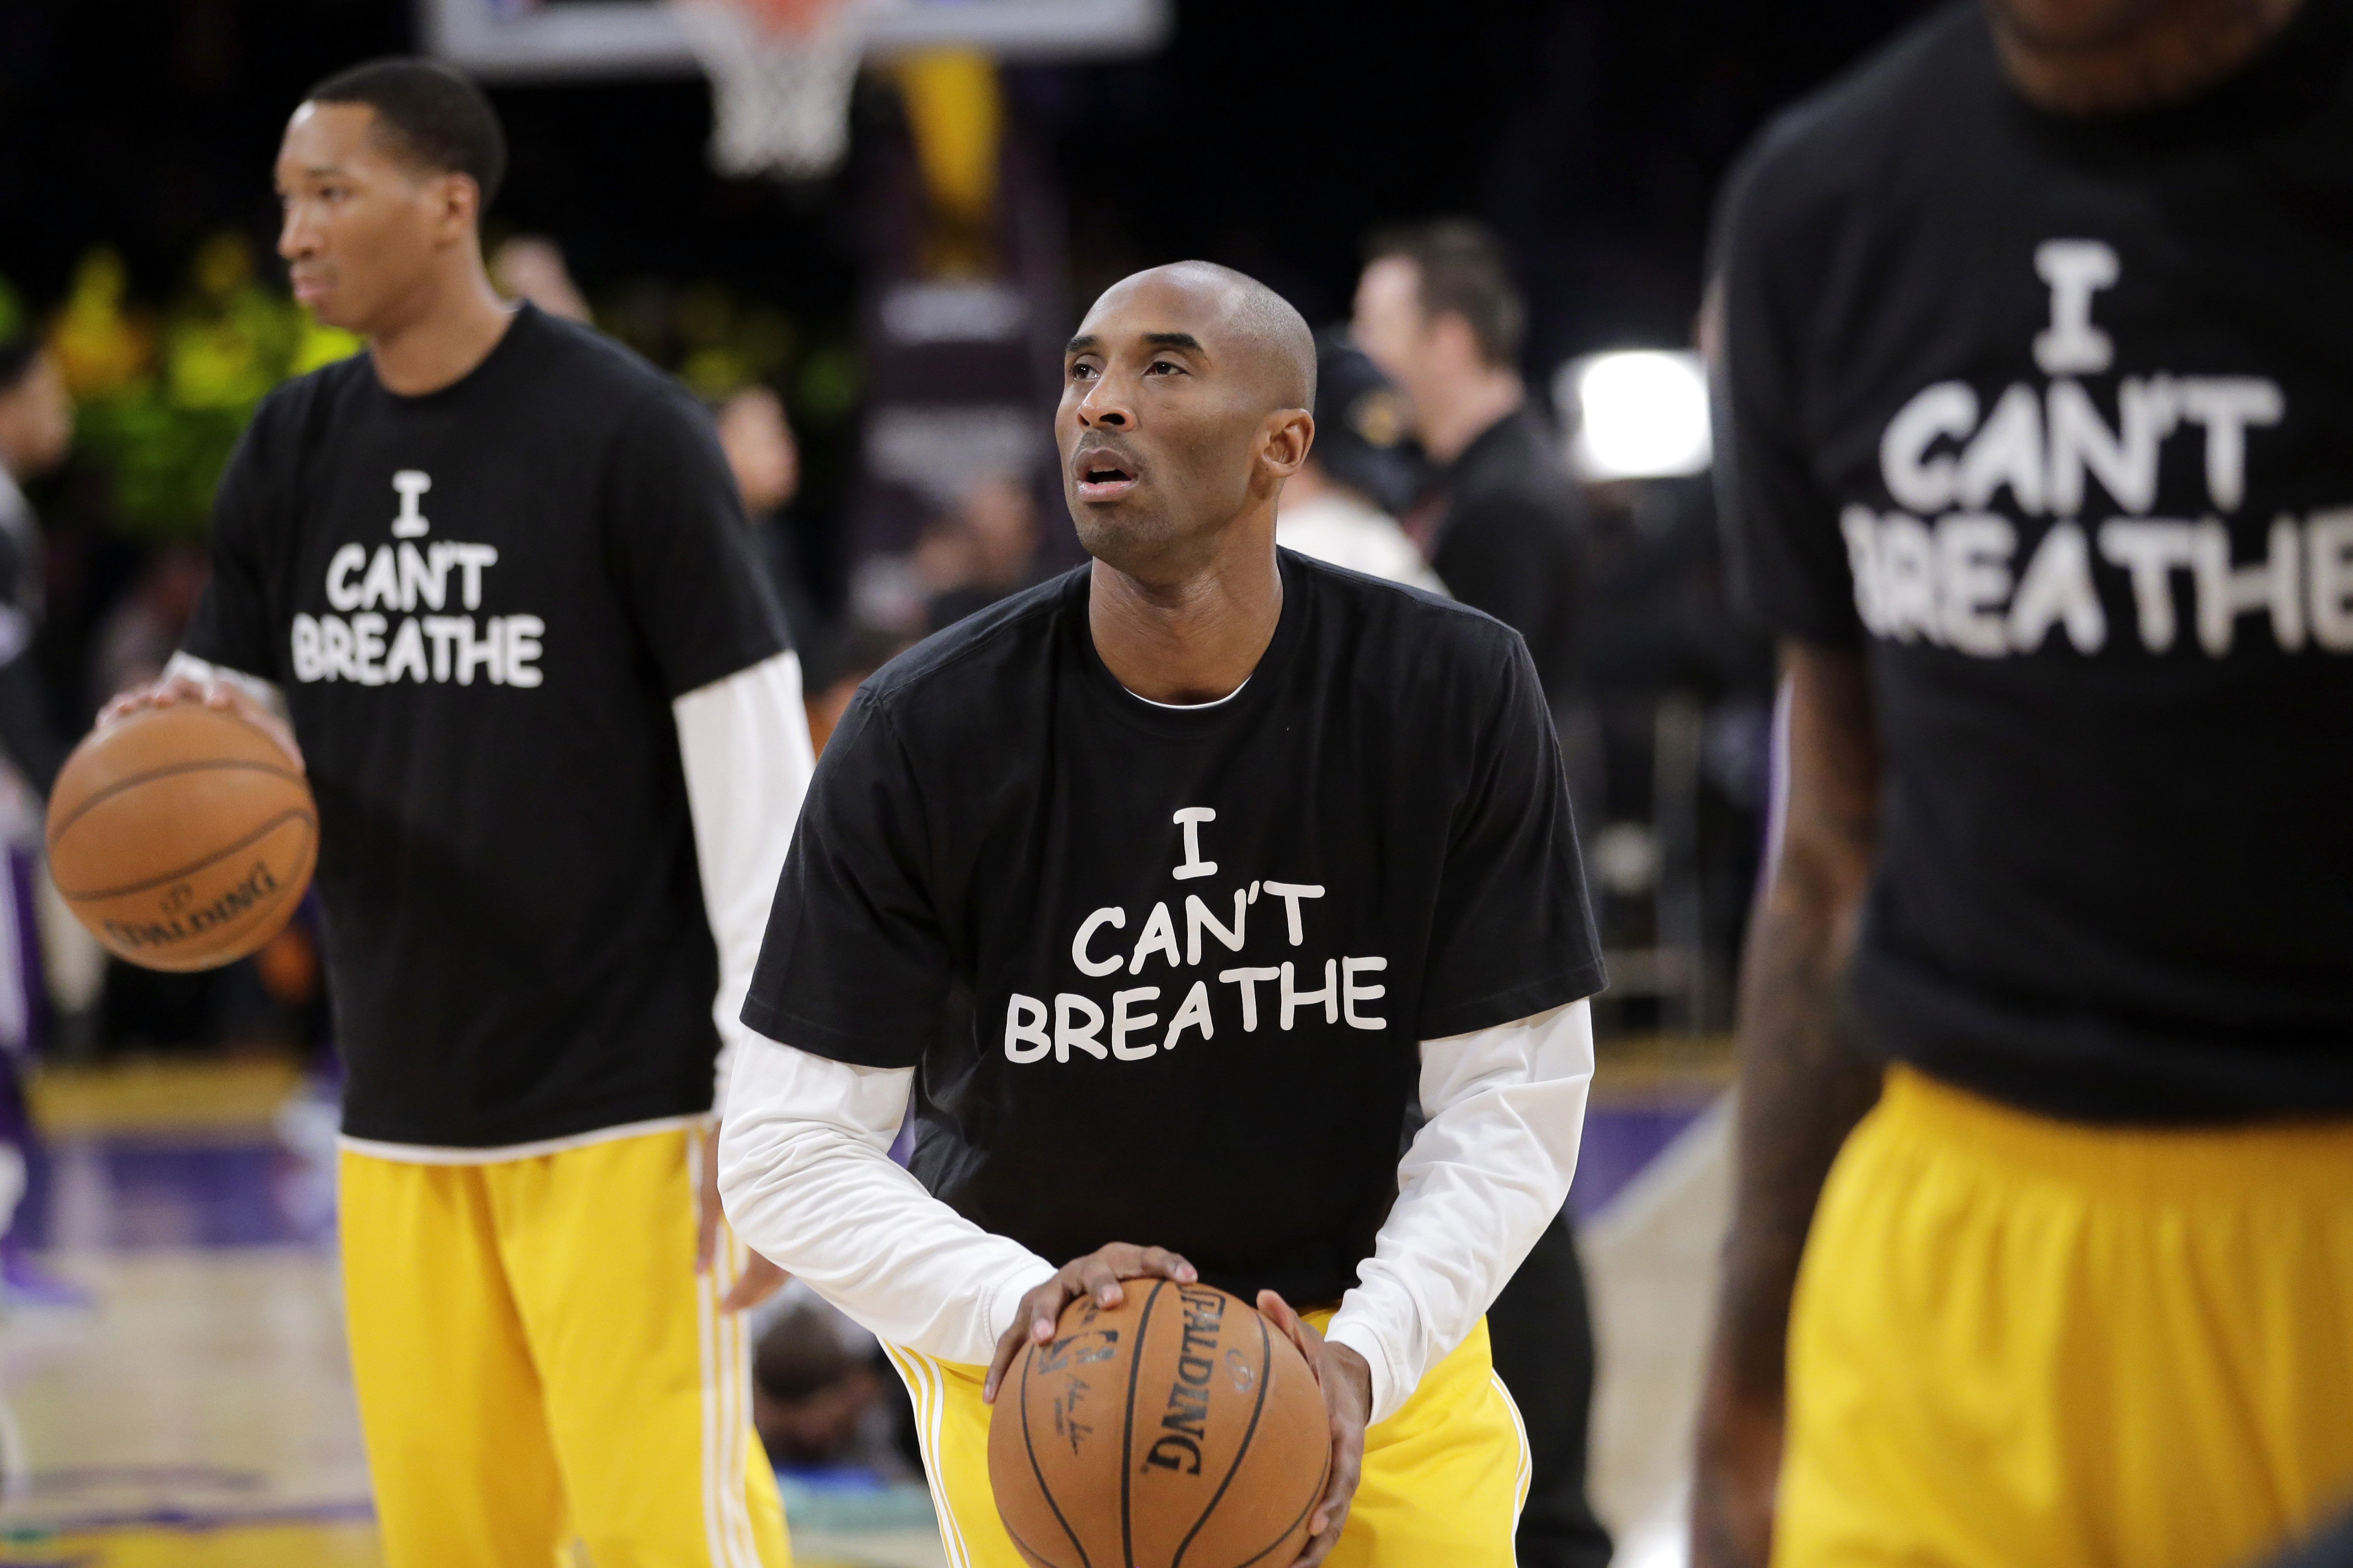 """In this Dec. 9, 2014, file photo, Los Angeles Lakers' Kobe Bryant, center, warms up before an NBA basketball game against the Sacramento Kings in Los Angeles. Dozens of athletes in recent weeks have responded to confrontations between authorities and black citizens in Ferguson, Mo., New York and elsewhere by wearing T-shirts bearing such statements as """"I Can't Breathe"""" and """"Hands Up, Don't Shoot!"""" (AP Photo/Jae C. Hong, File)"""